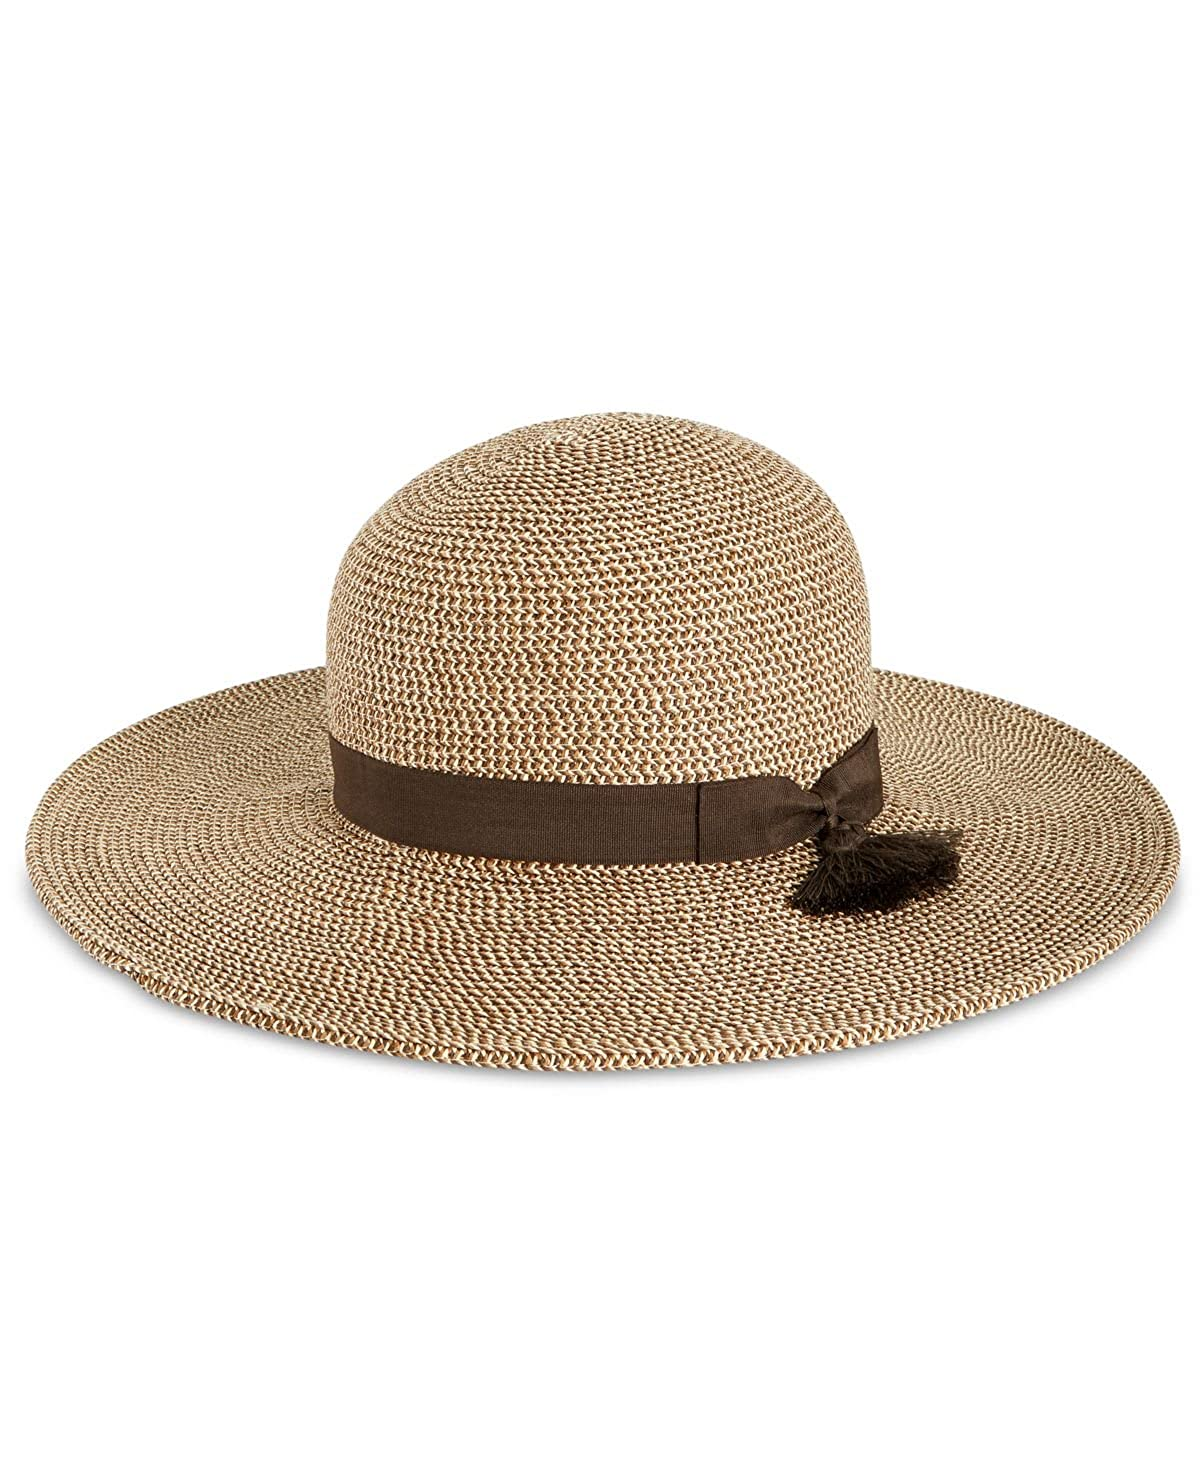 45da5550581 Nine West Womens Packable Floppy Hat One Size Brown at Amazon Women s  Clothing store